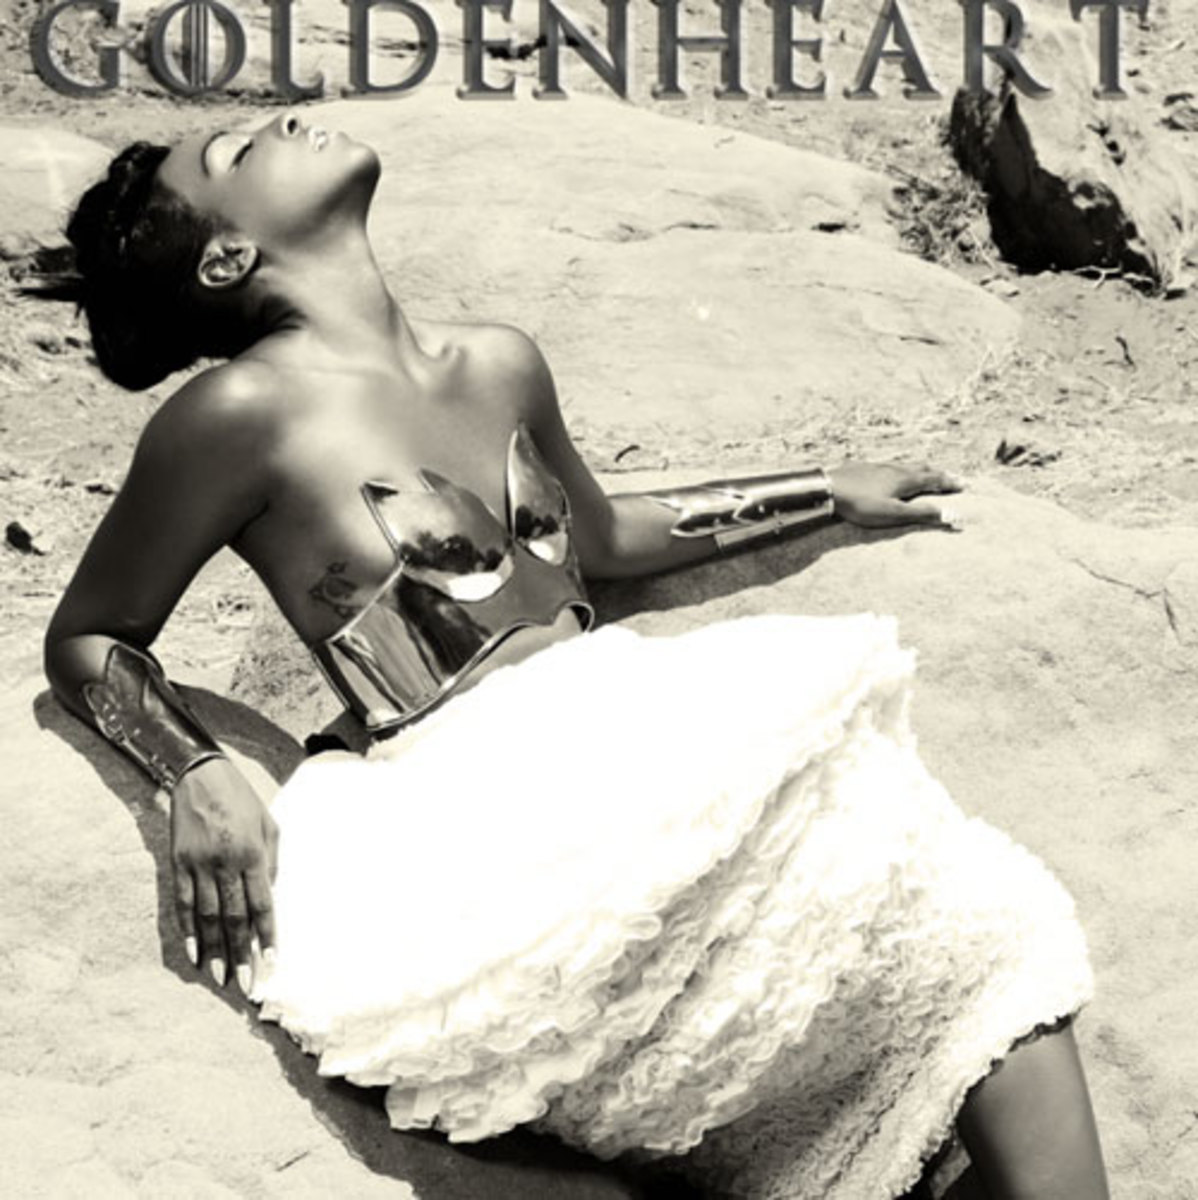 dawnrichard-goldenheart.jpg